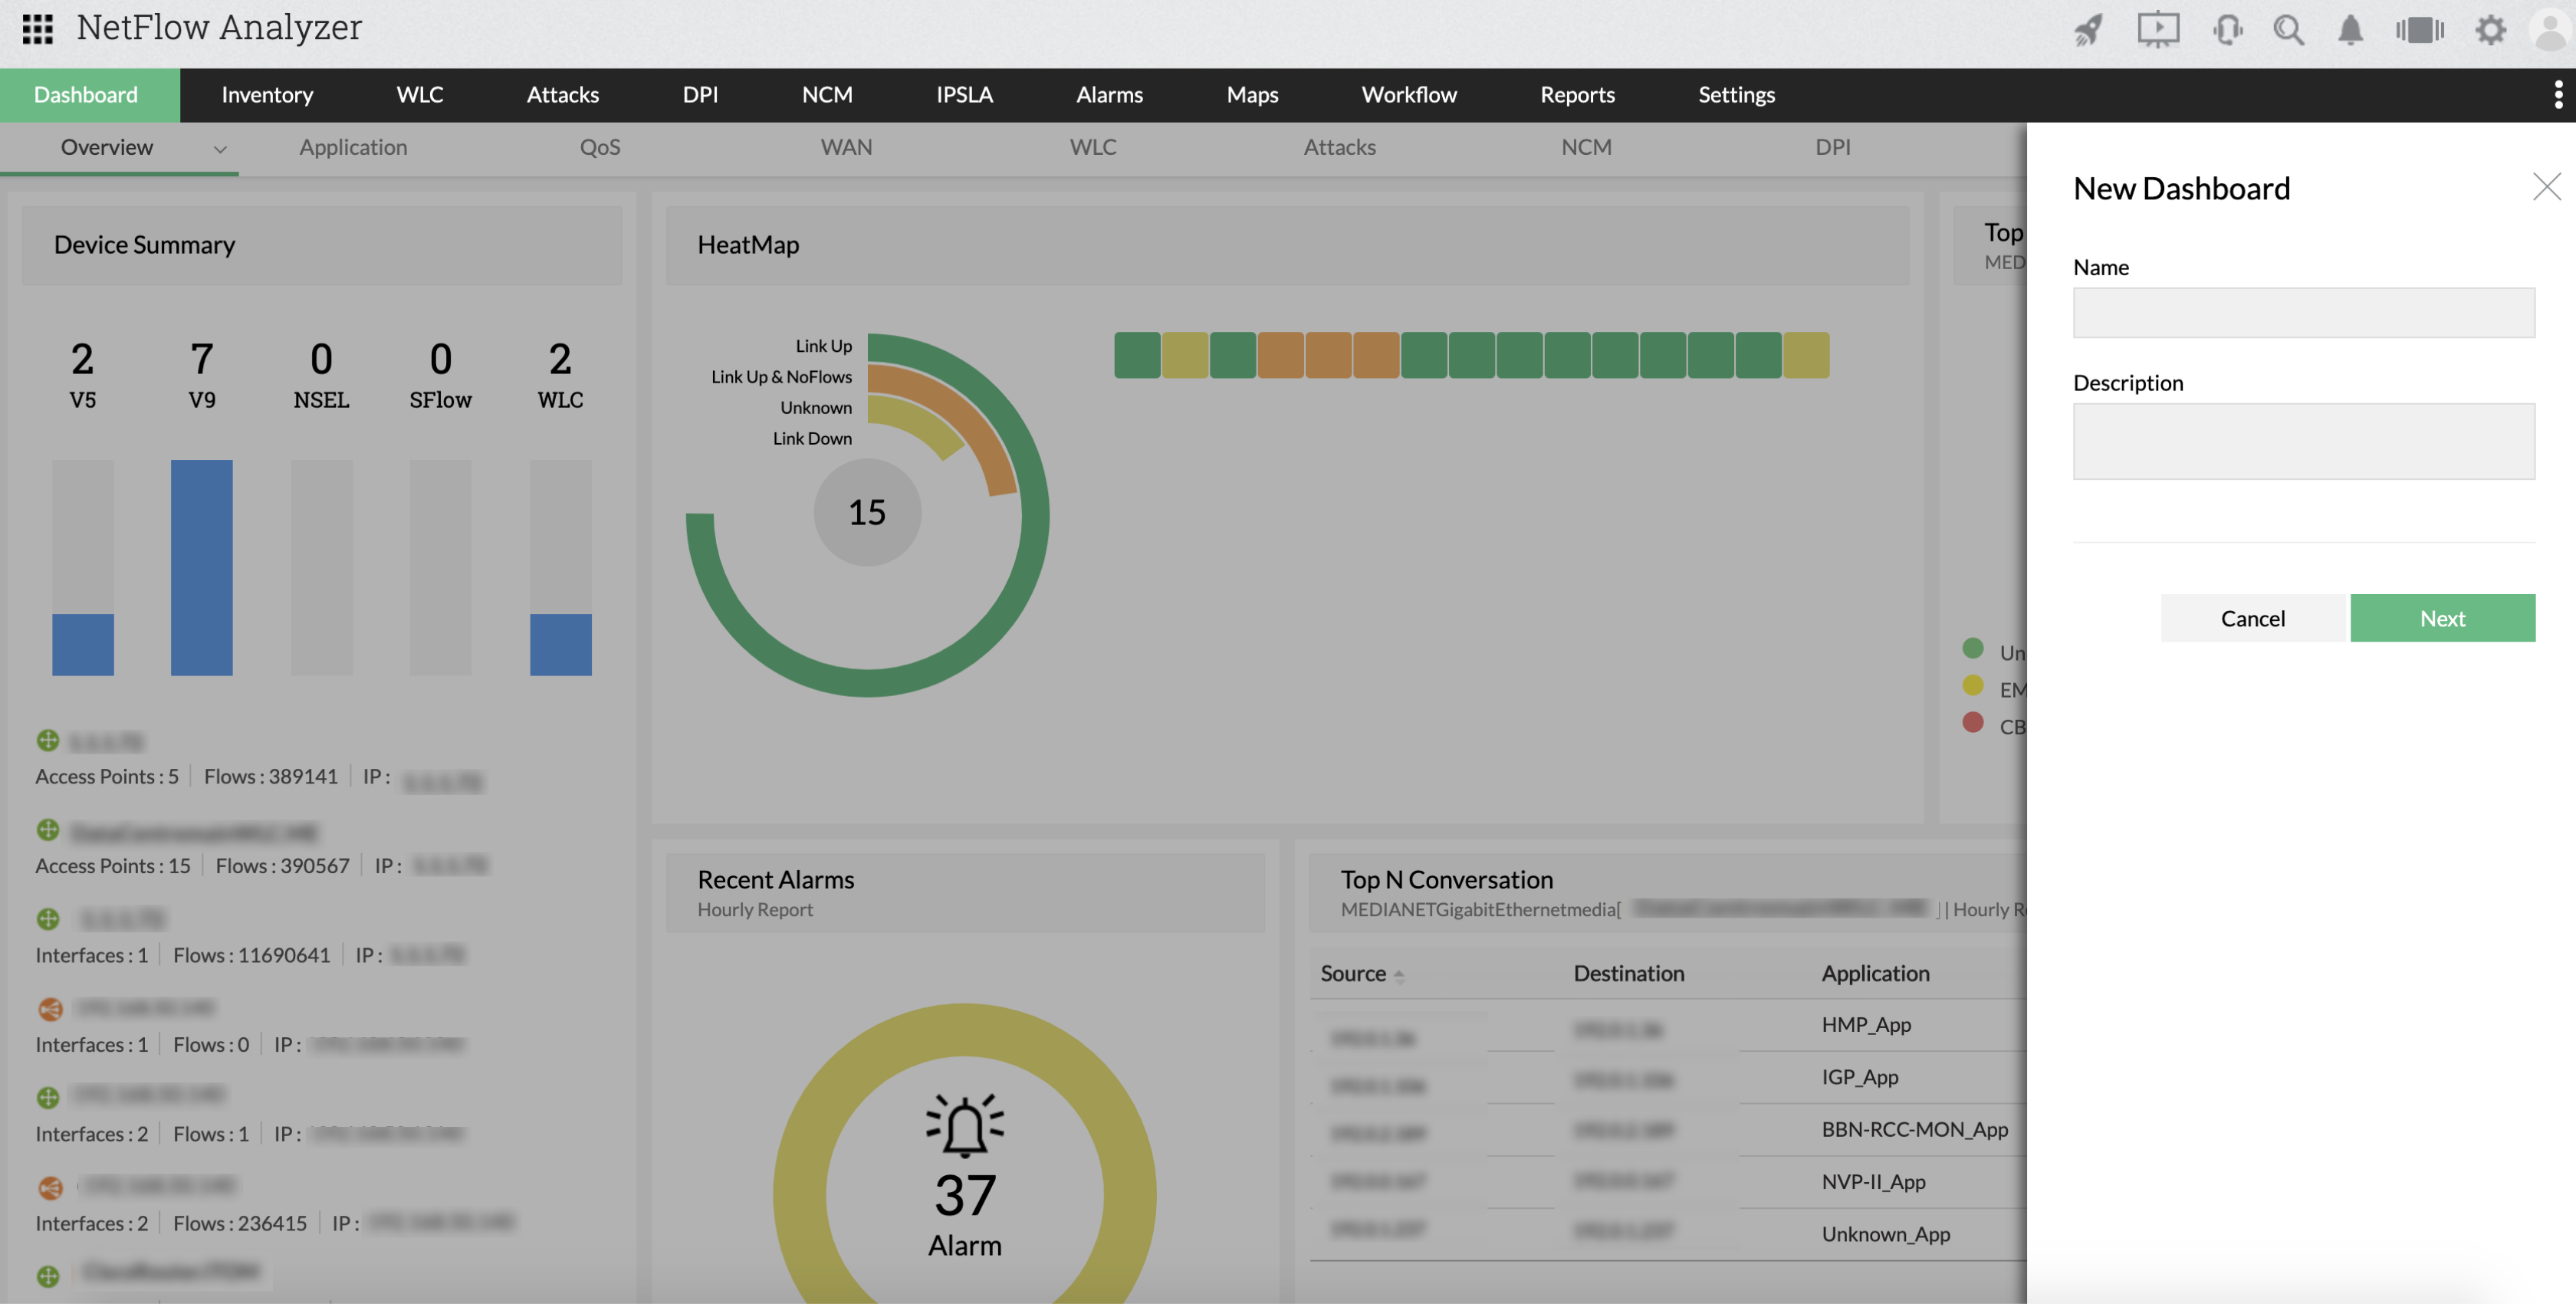 Real-Time Web Traffic Monitor - ManageEngine NetFlow Analyzer